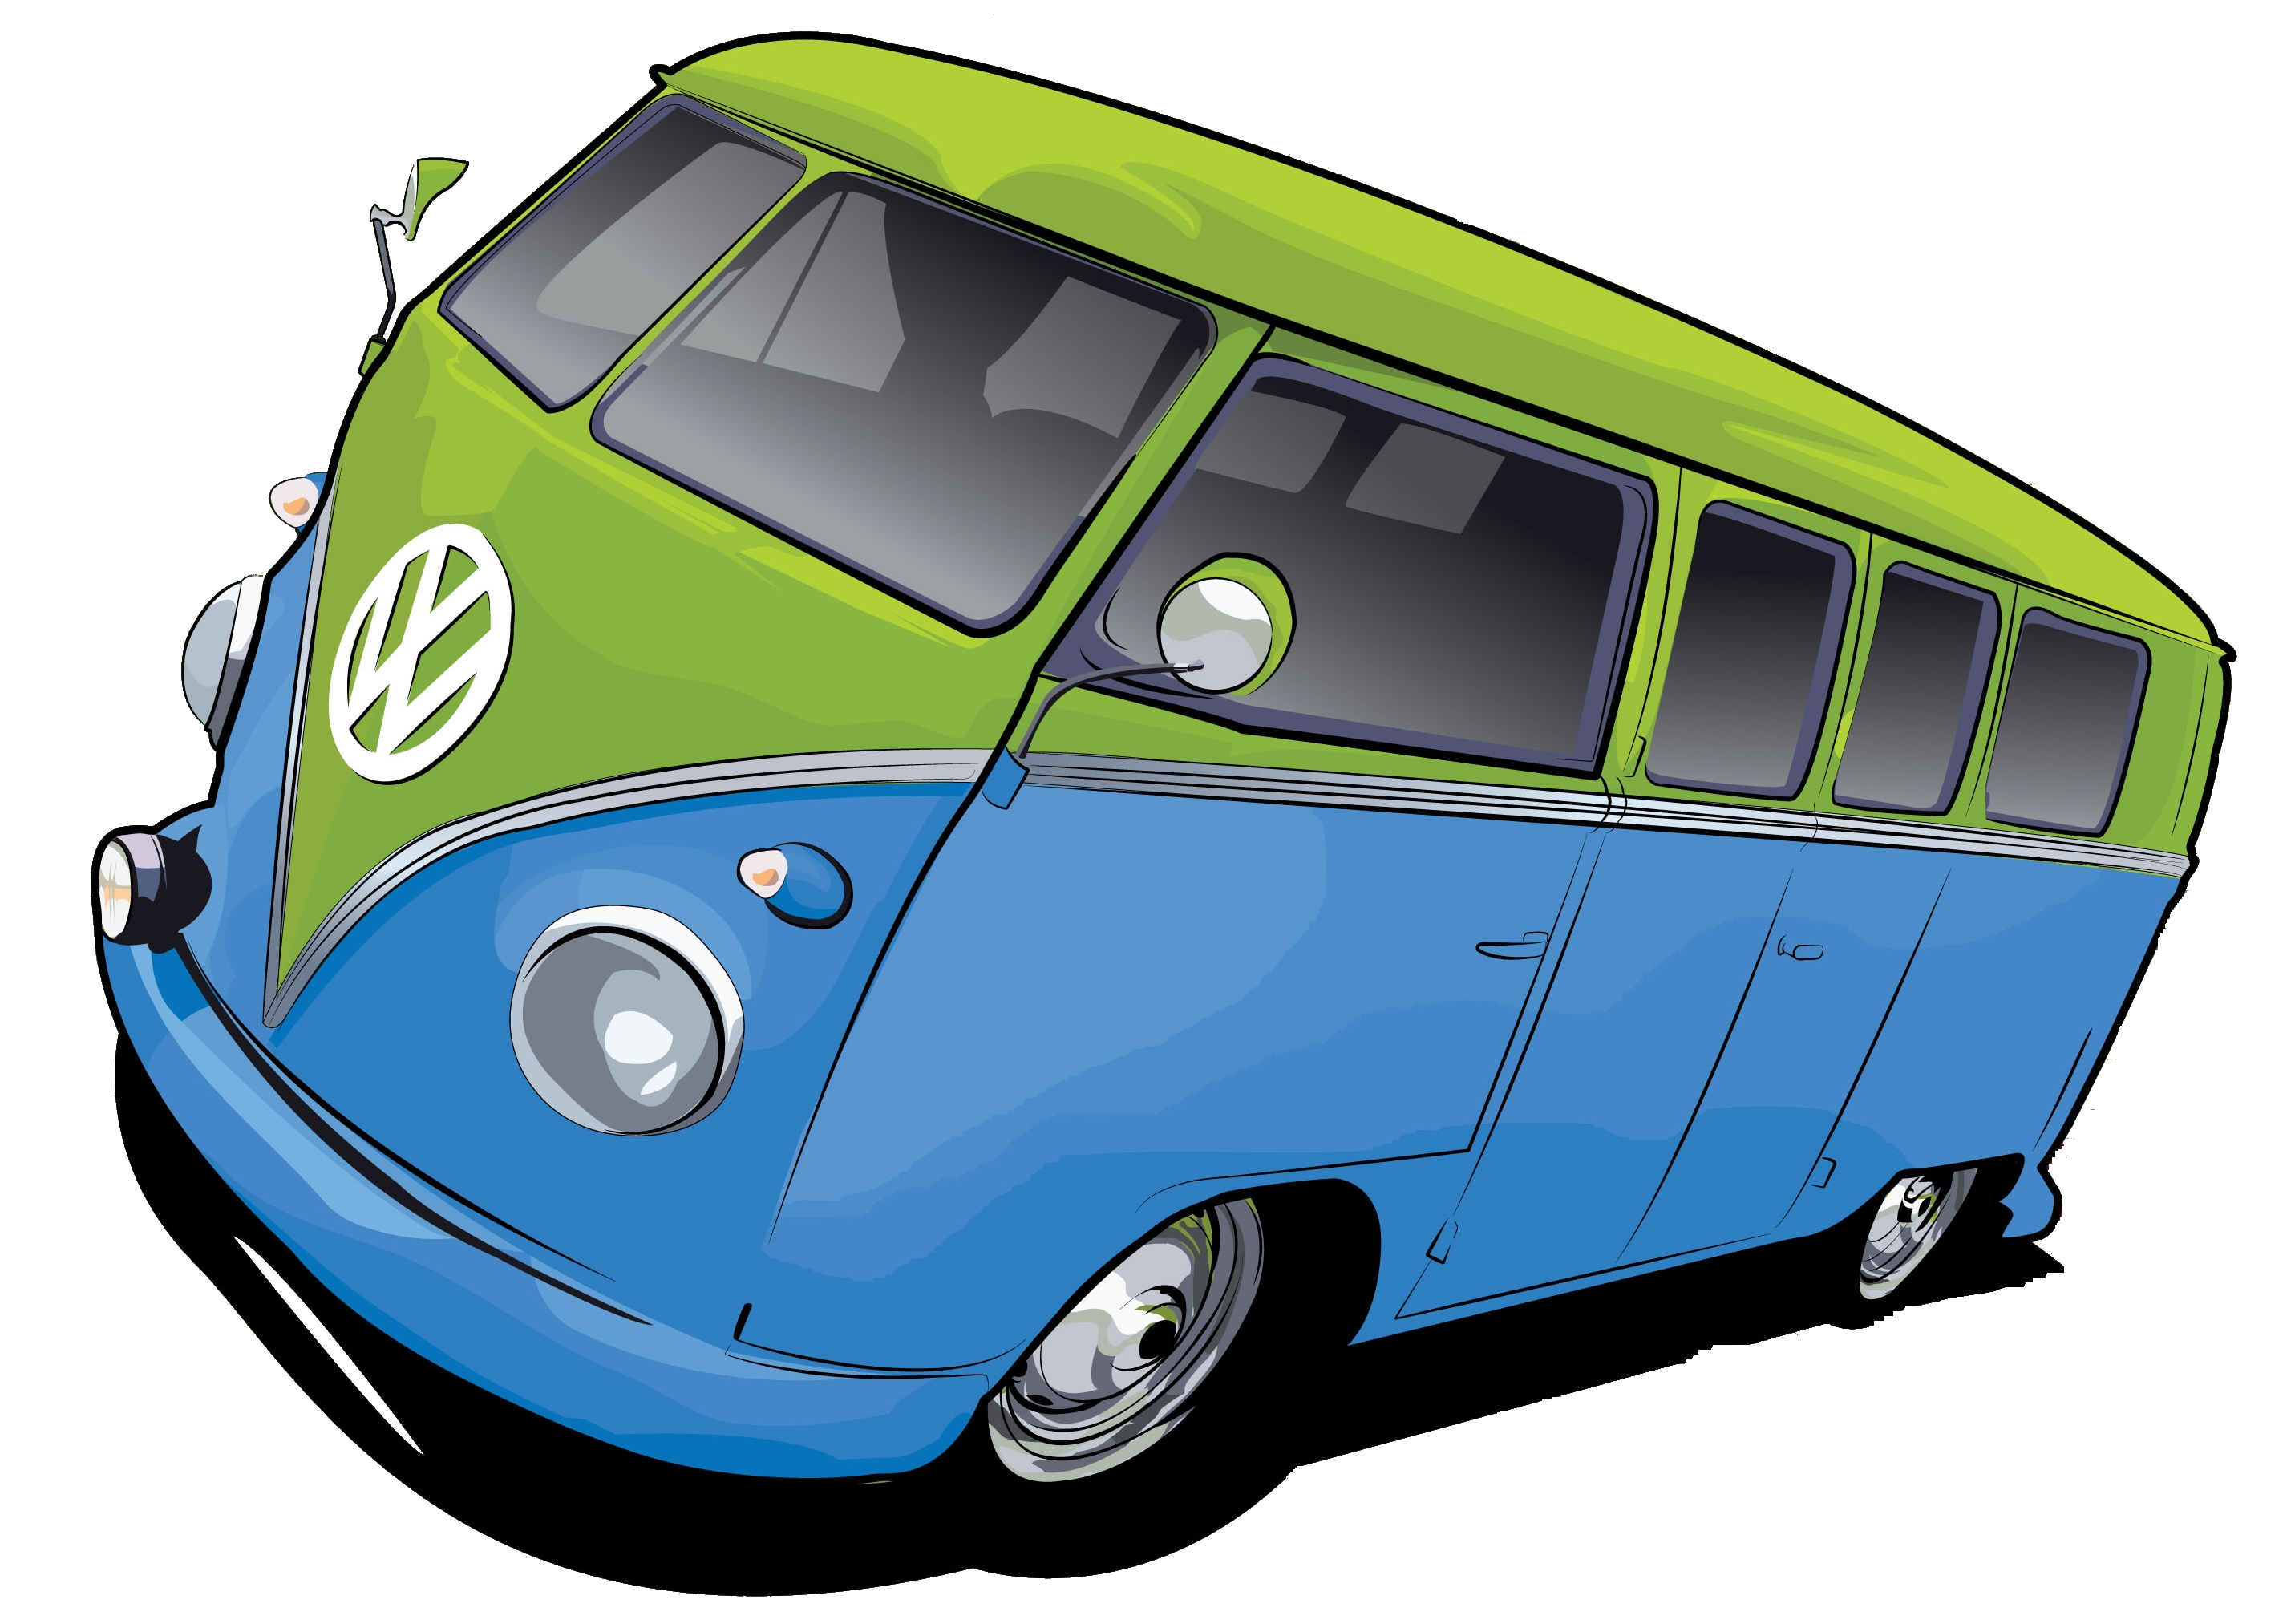 Vw Bus By Stxd S.